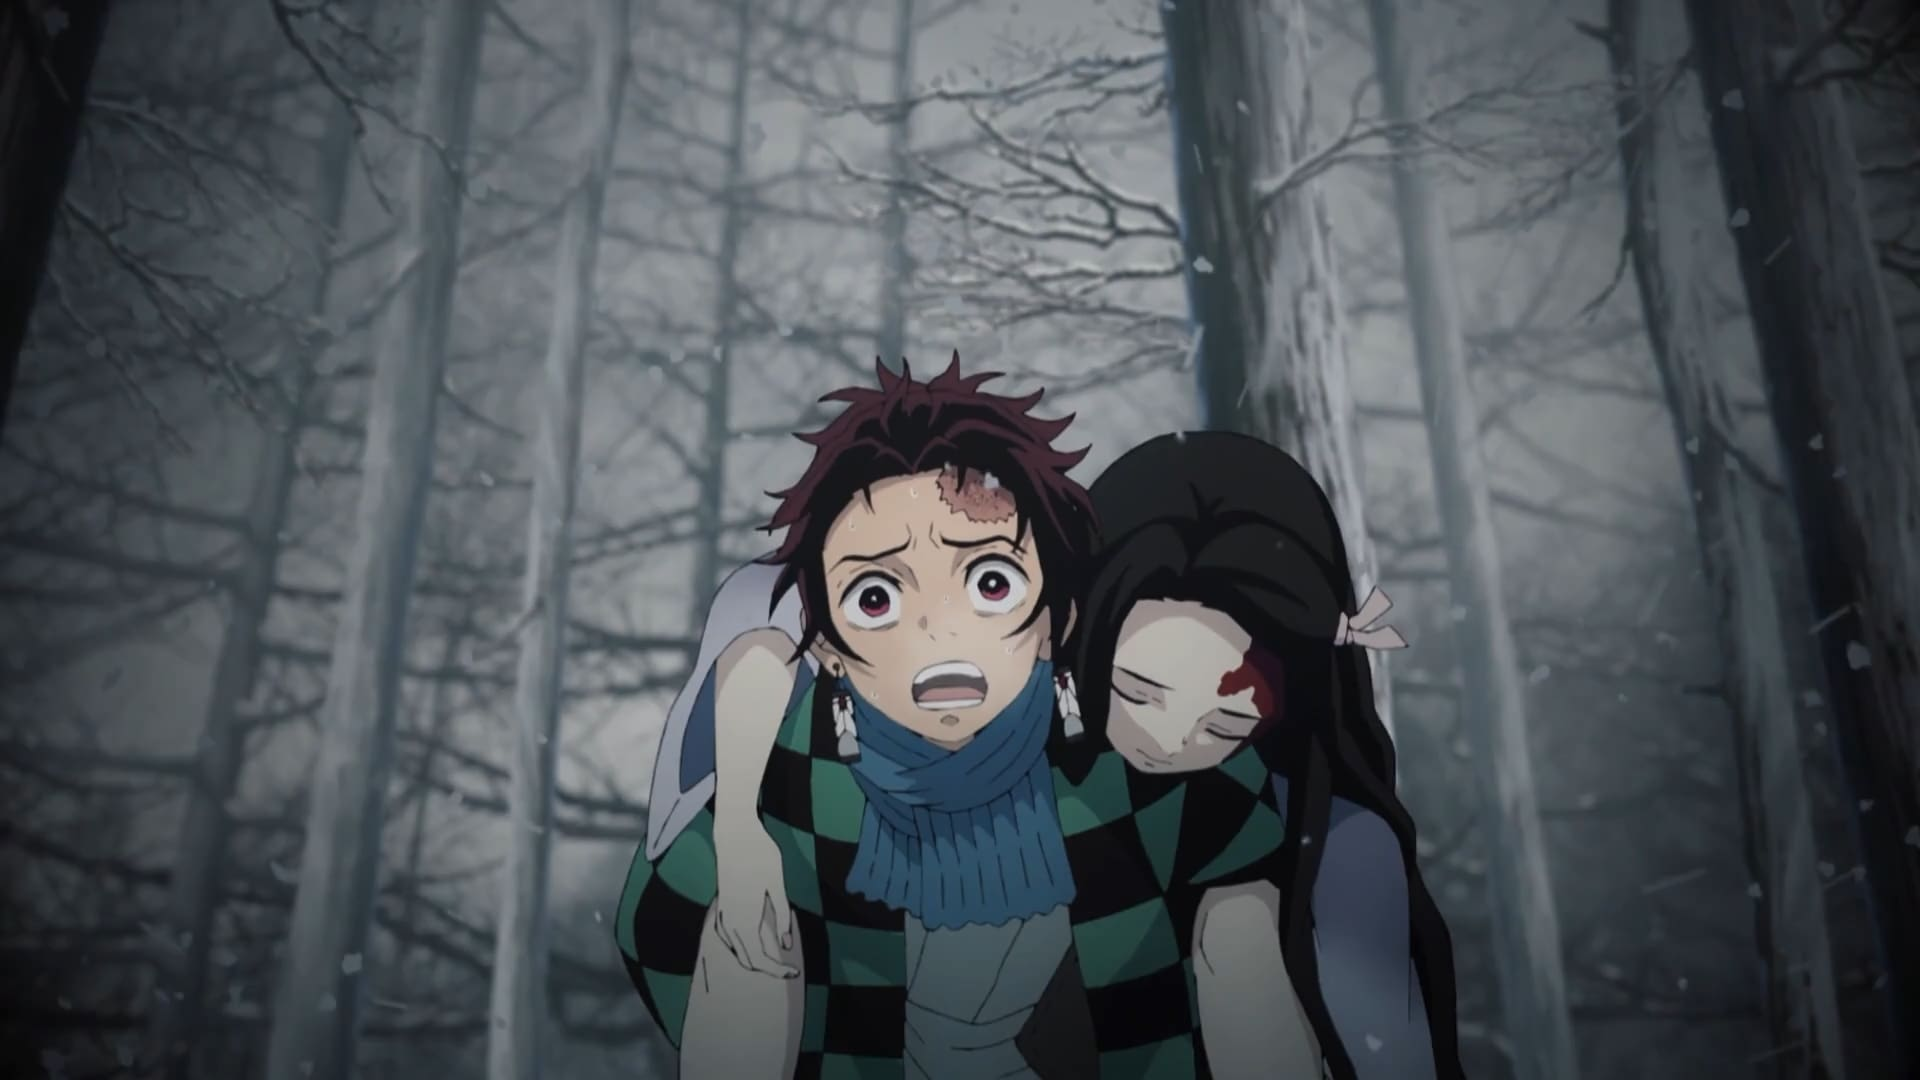 Watch Demon Slayer: Kimetsu no Yaiba: Season 1 Episode 1 Online